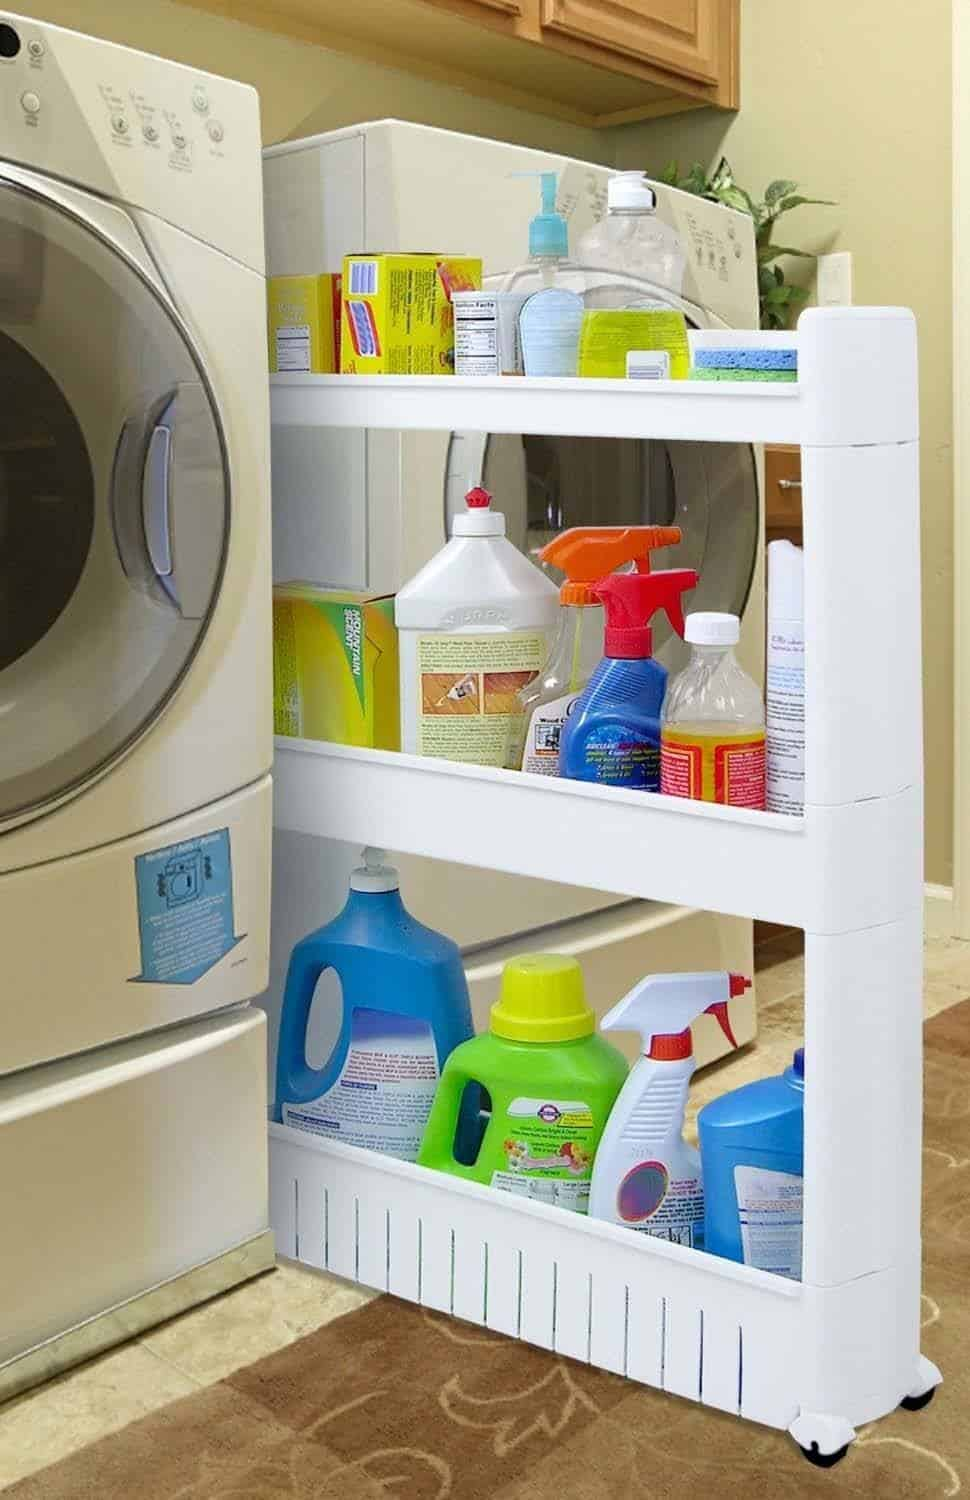 Laundry Room Organization Ideas-12-1 Kindesign